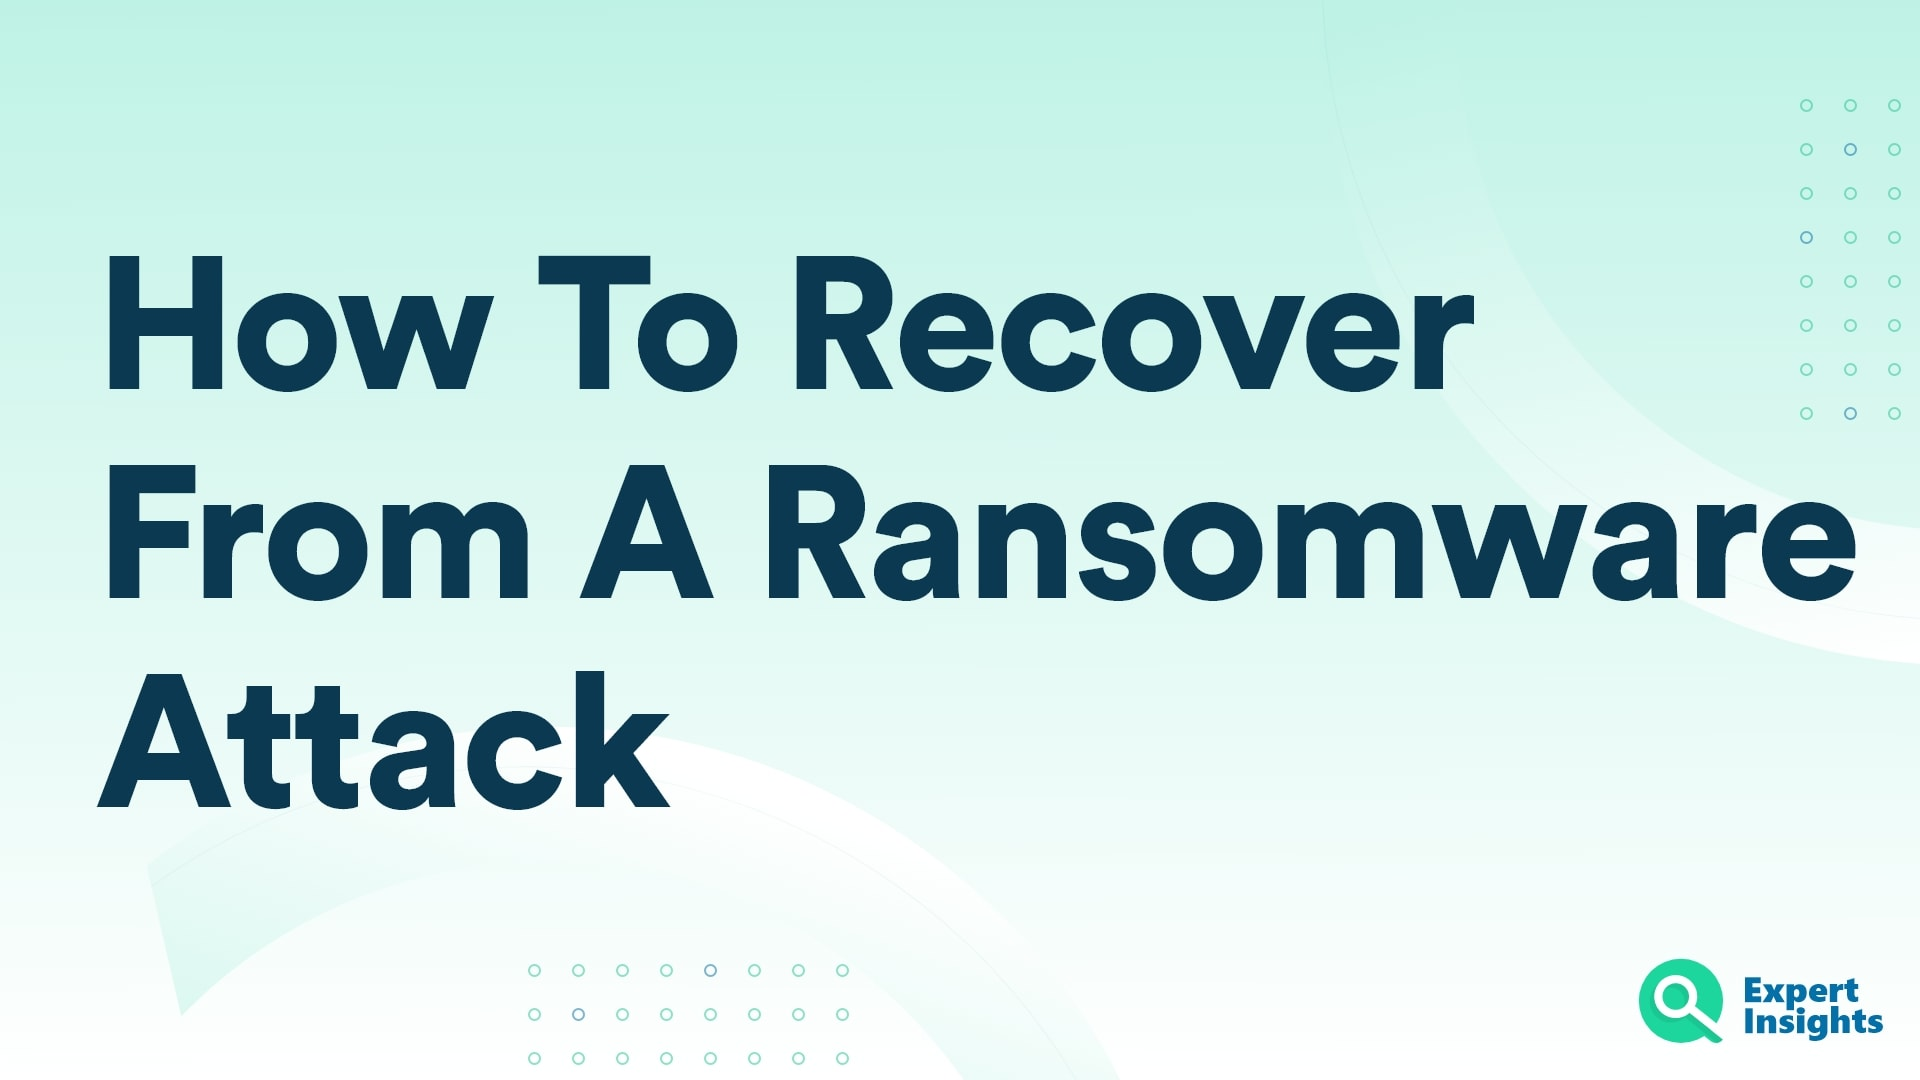 How To Recover From A Ransomware Attack- Expert Insights